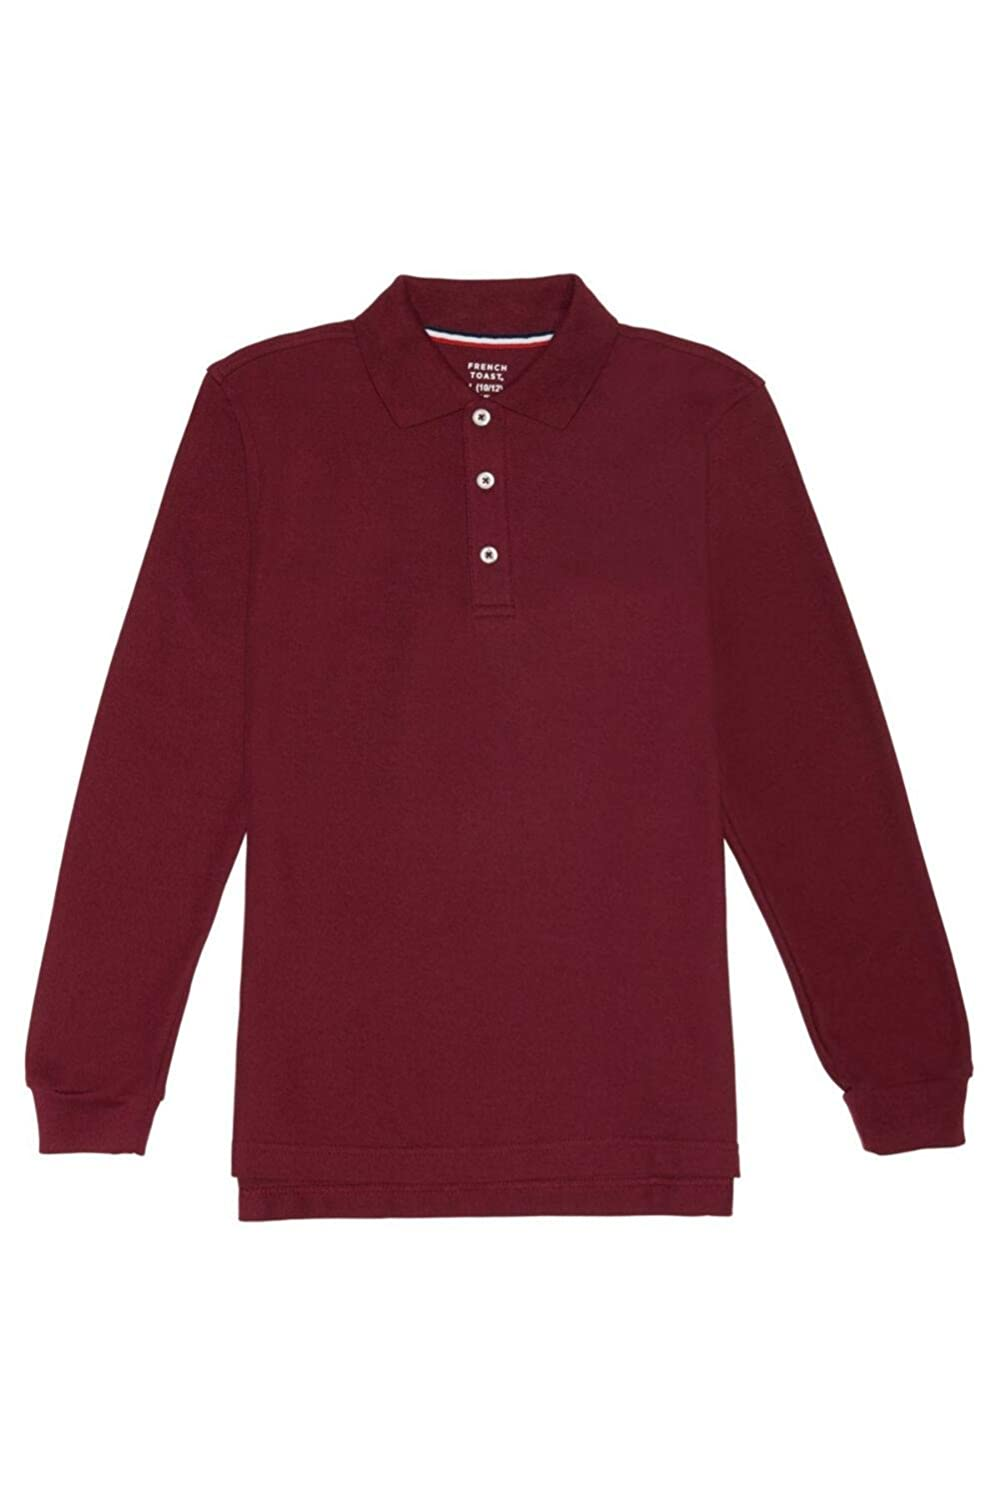 French Toast Long Sleeve Pique Polo Boys Burgundy 14 Husky French Toast School Uniforms 1009T BURG 14H